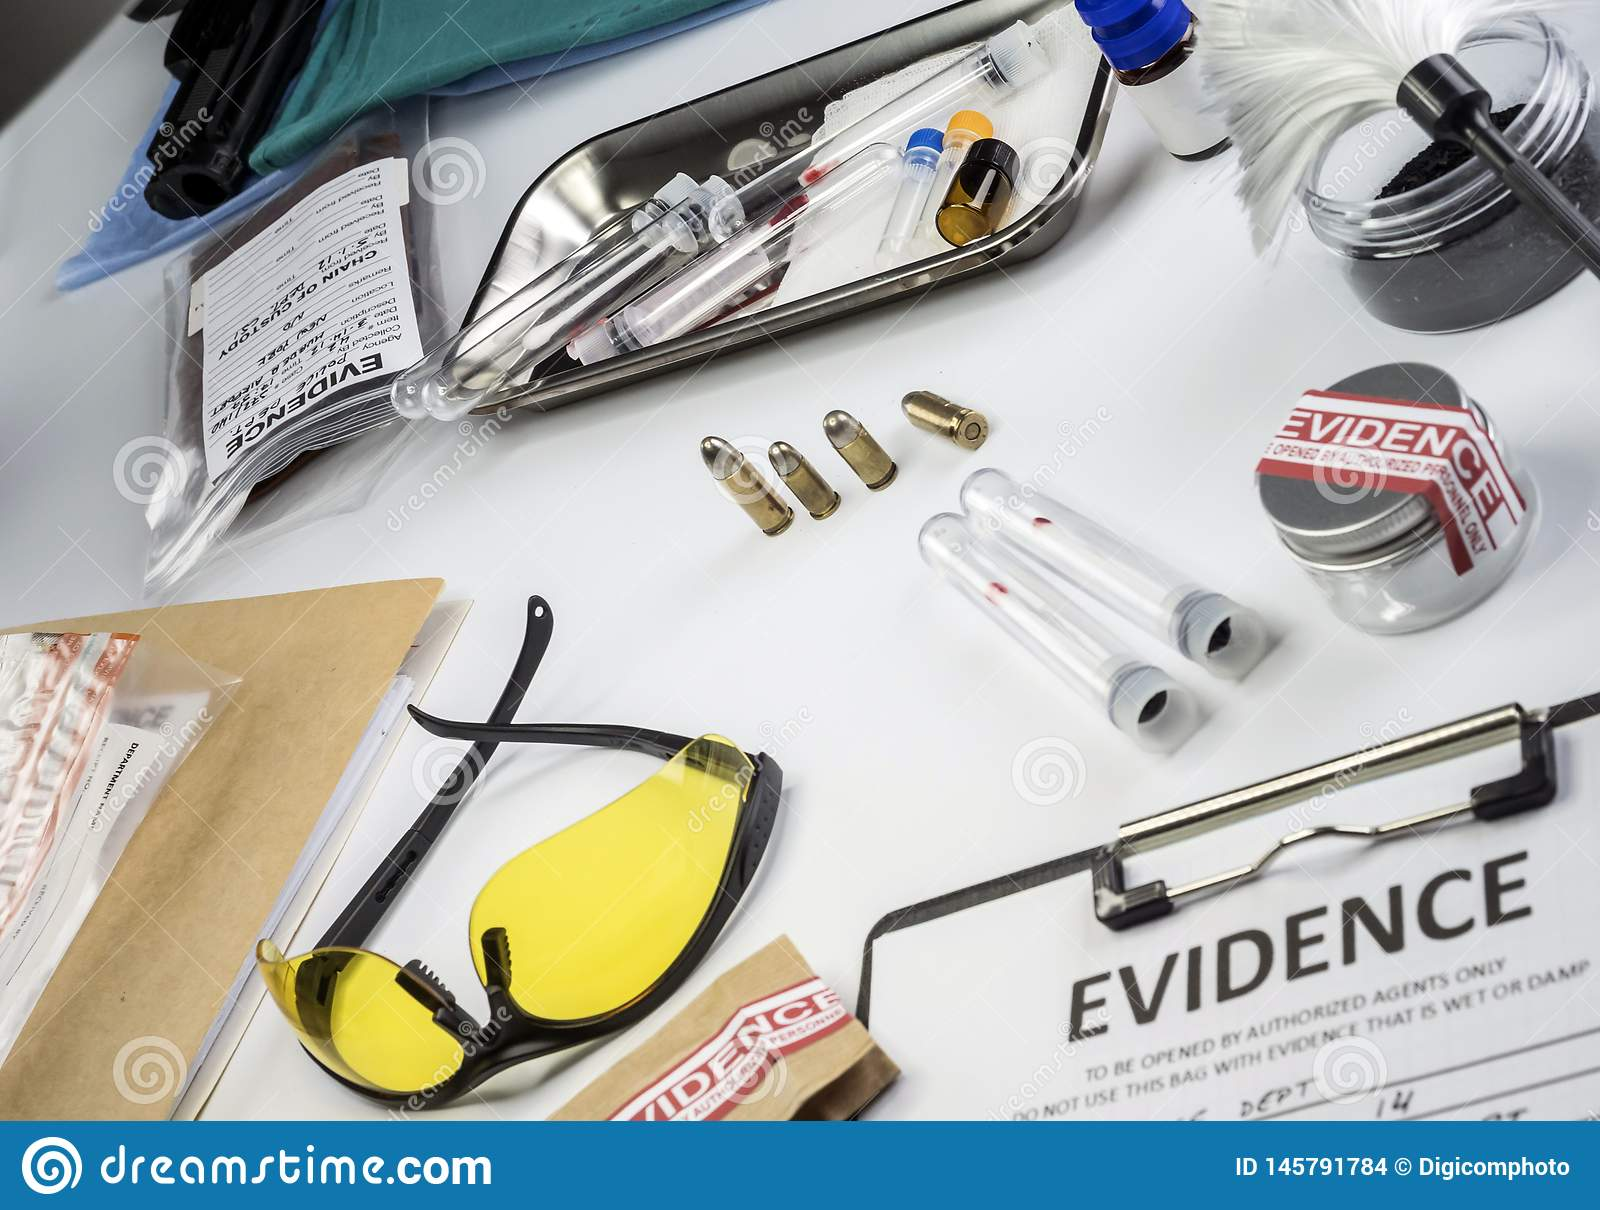 Police Record Along With Some Forensic Evidence Of Murder At Laboratorio Forensic Equipment Stock Photo Image Of Fingerprint Case 145791784